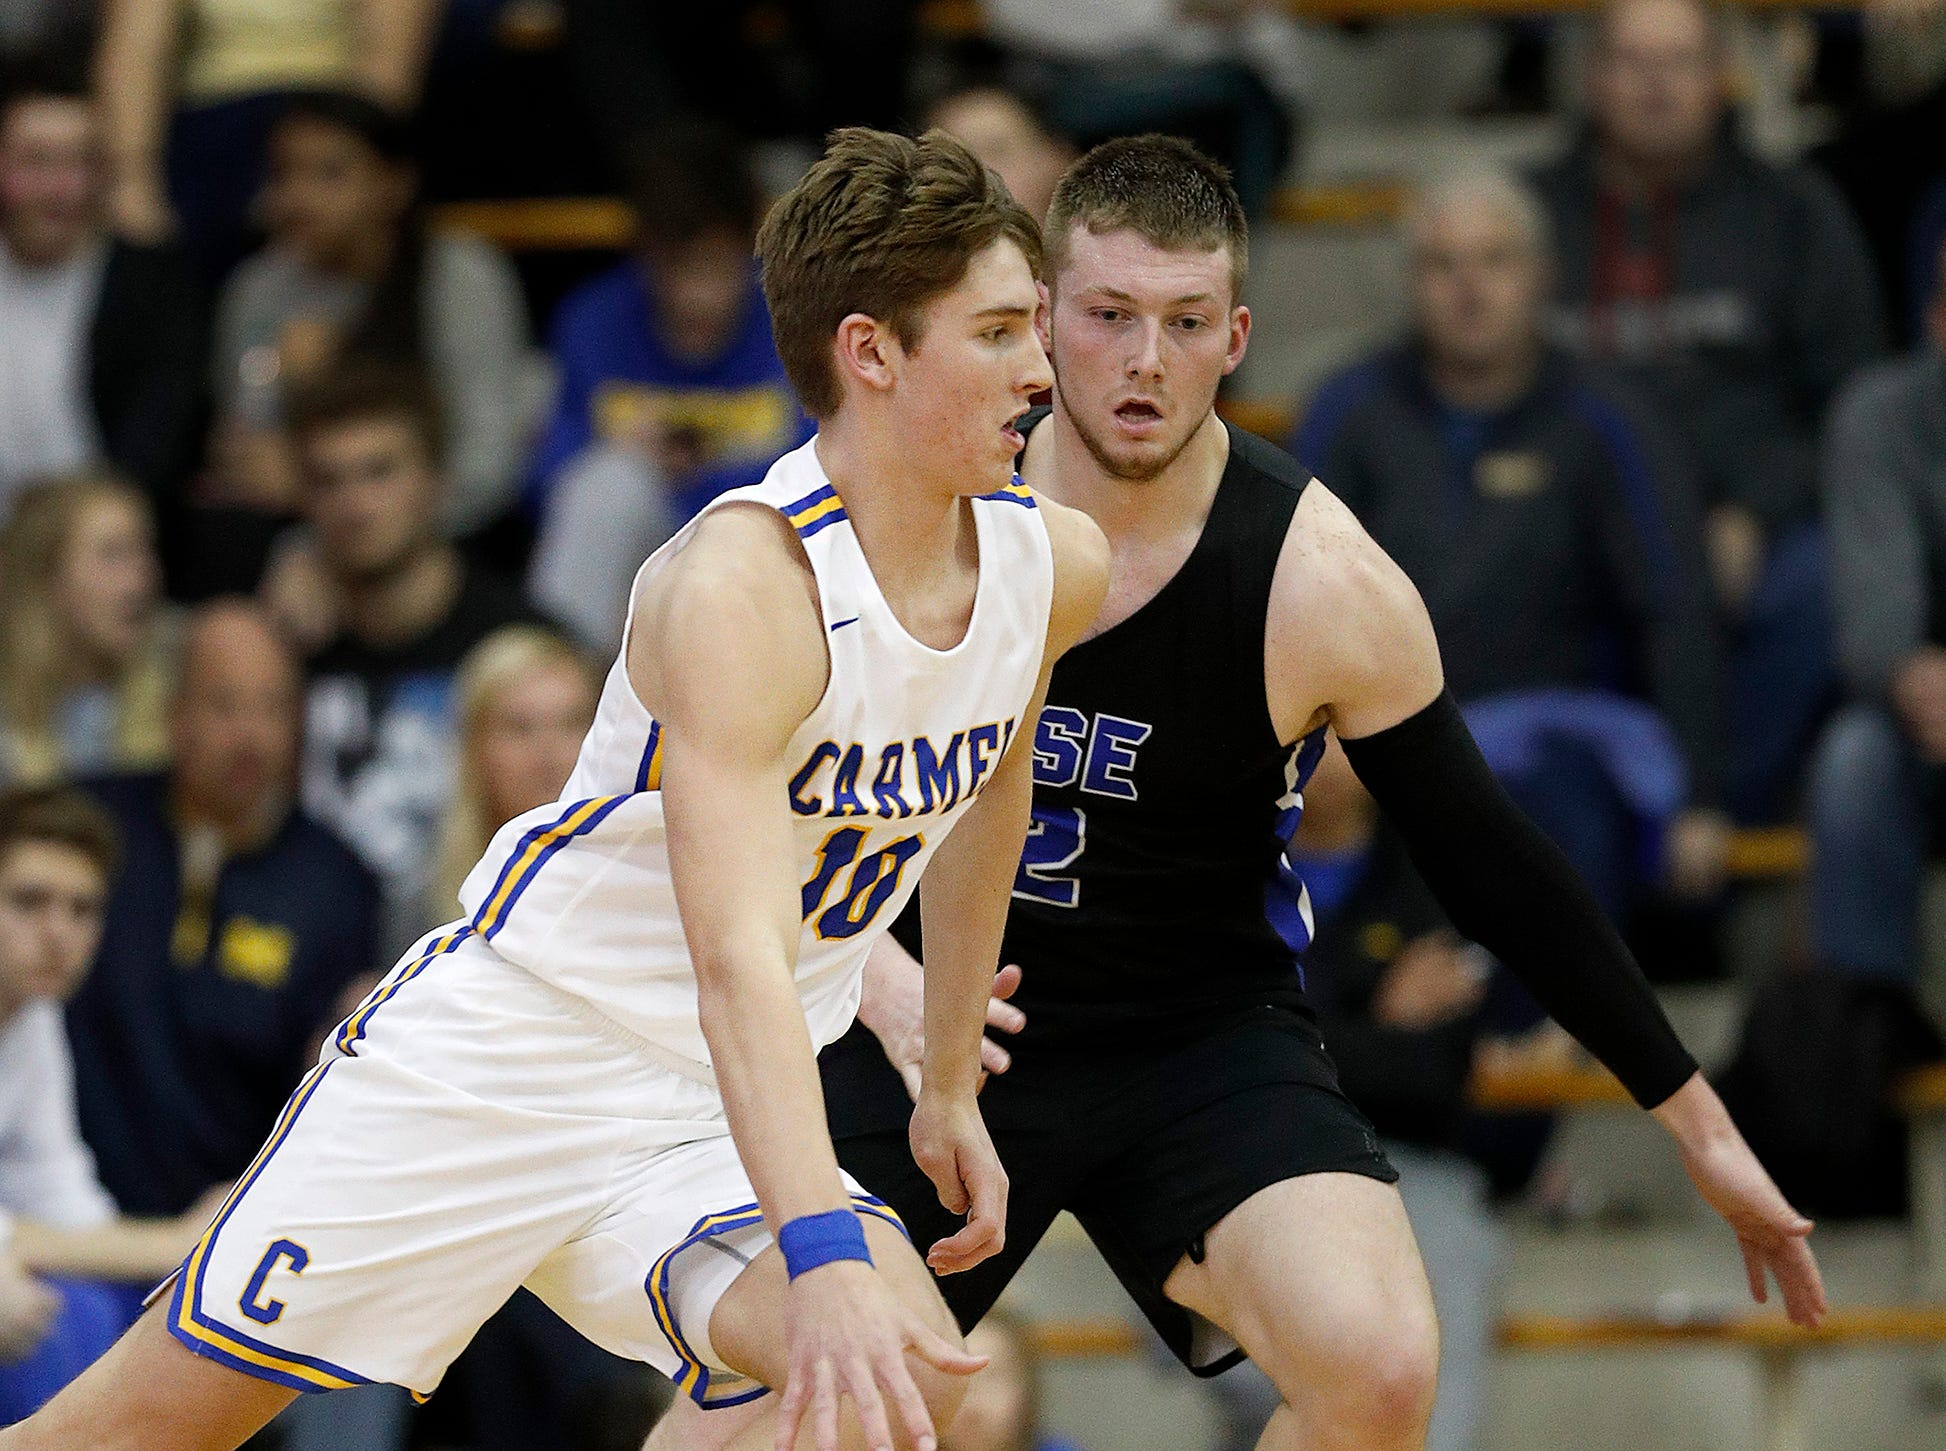 Carmel Greyhounds Peter Suder (10) drives on Hamilton Southeastern Royals Aaron Etherington (2) in the second half of their game at Carmel High School on Friday, Feb. 8, 2019.